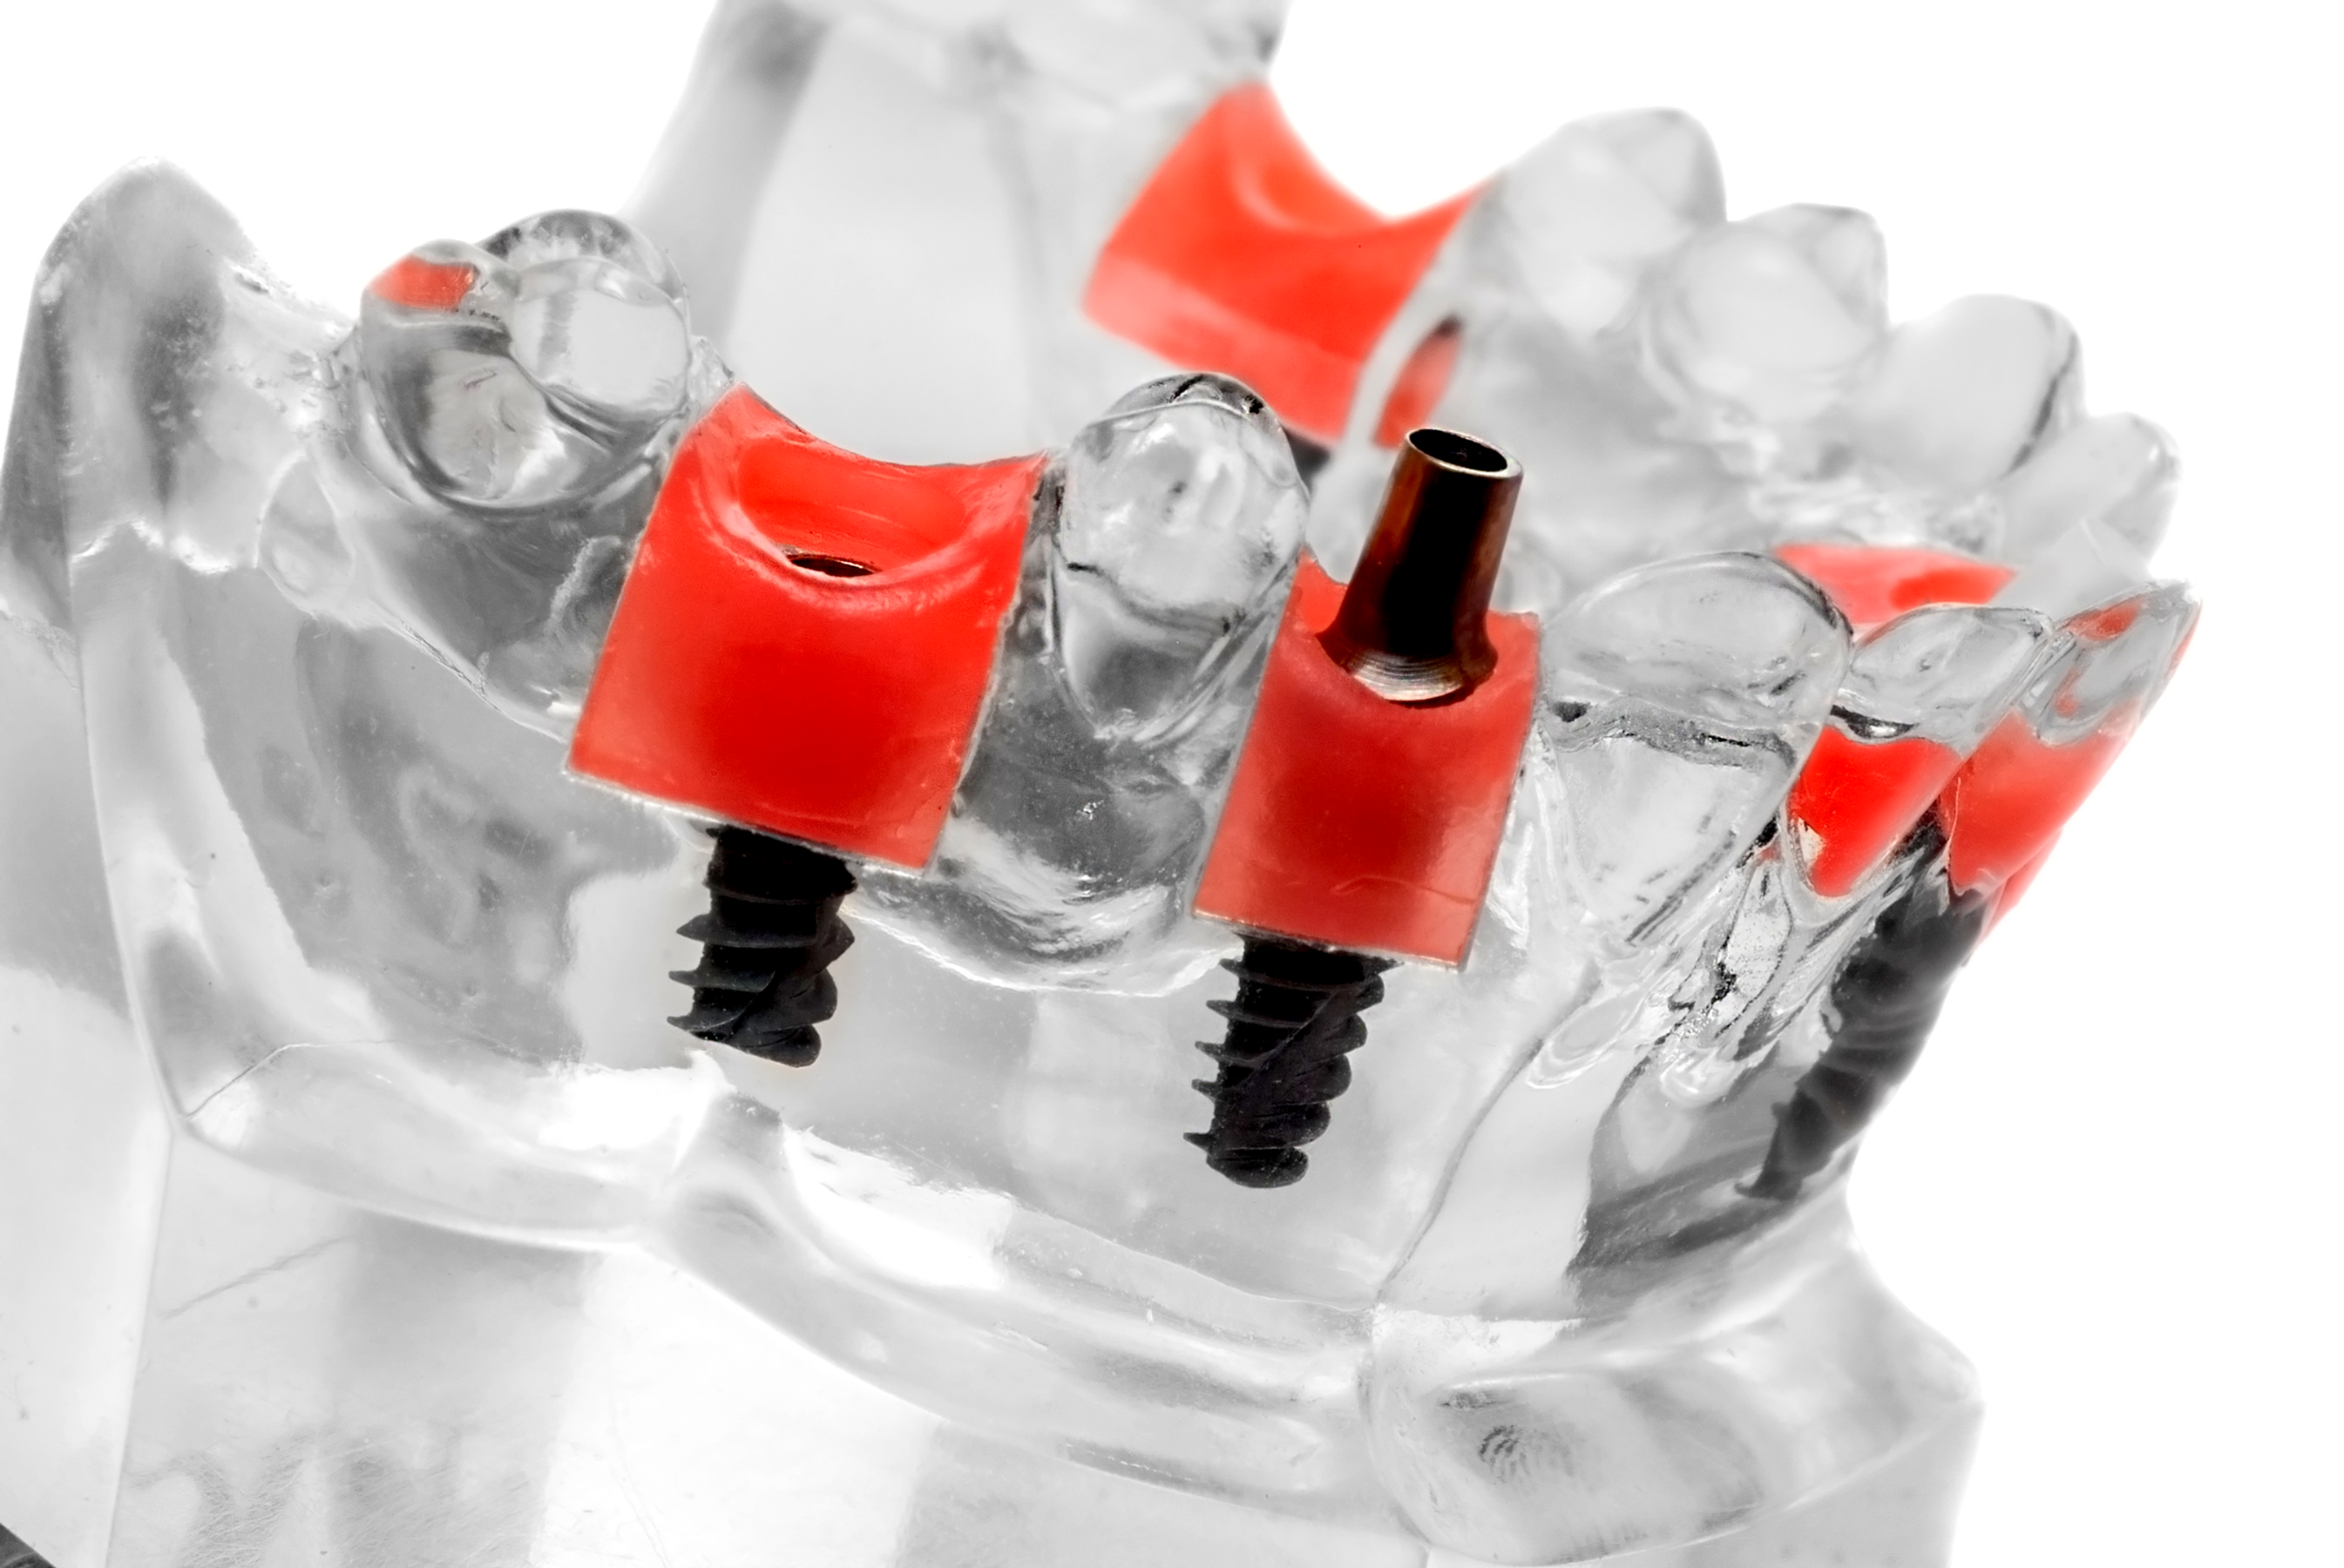 Dental Implants, Permanent Bridges, and Dentures: Which is best for me?